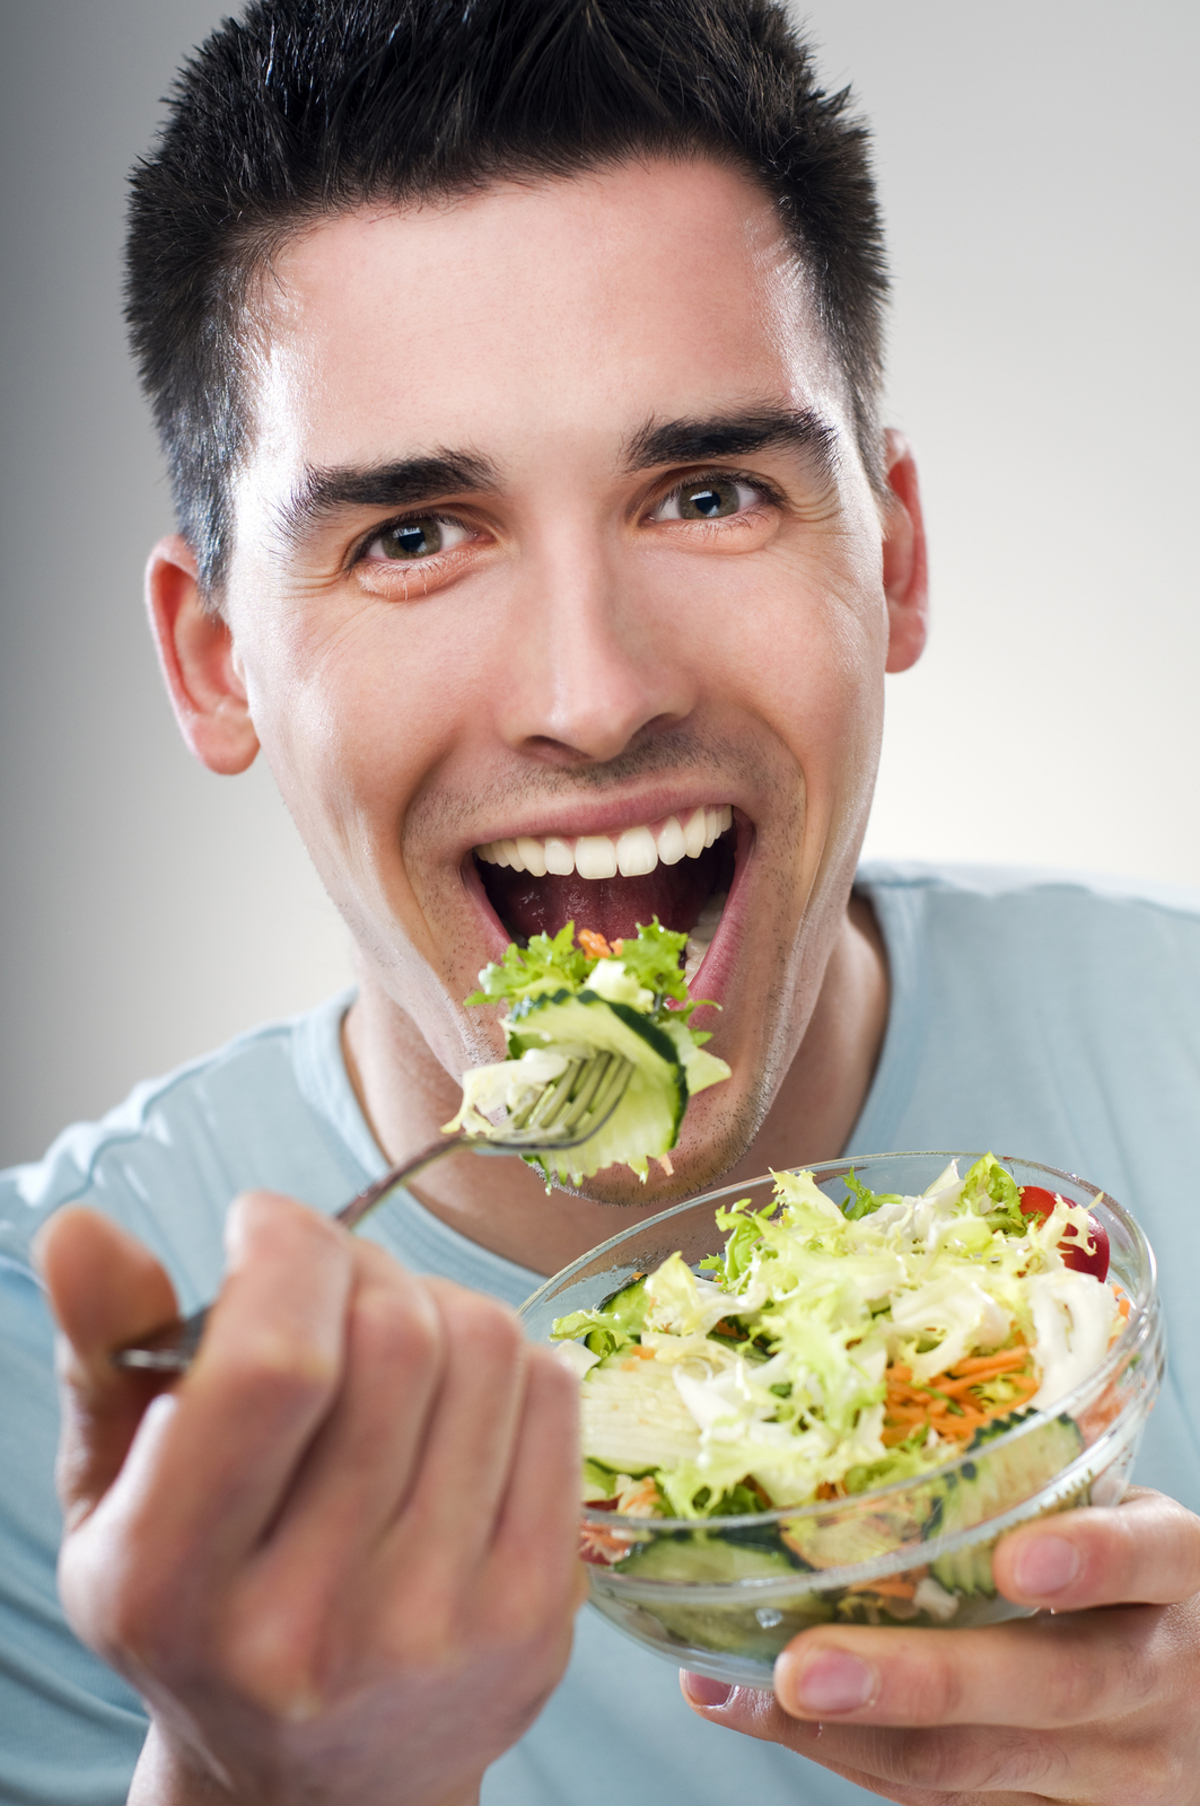 Man eating a salad.